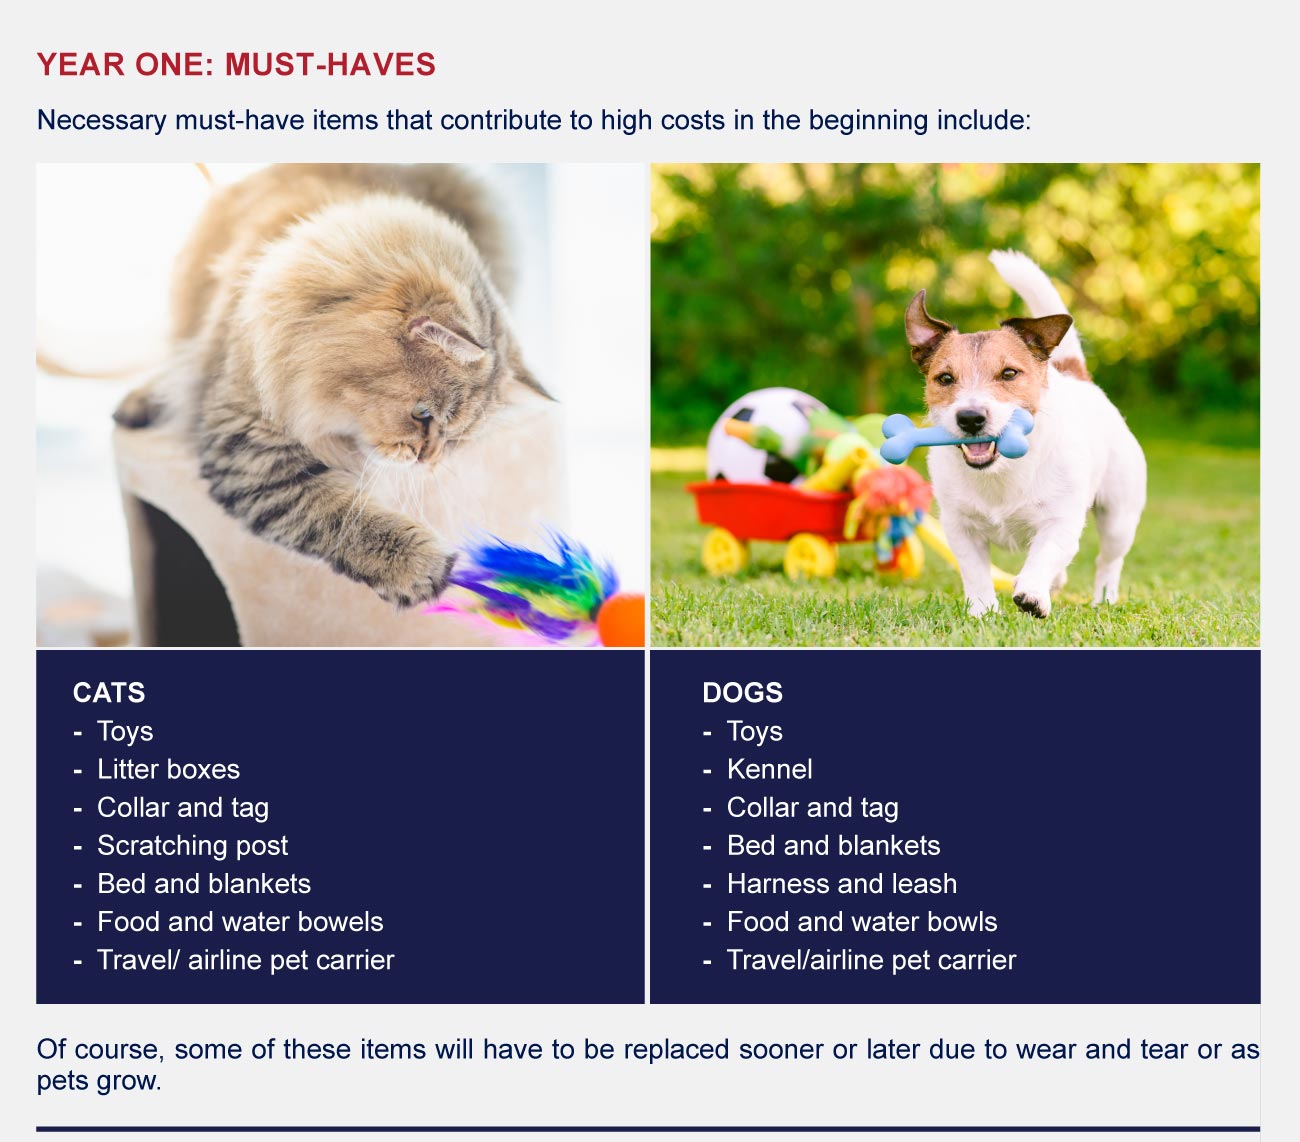 Year one: must haves for cats and dogs